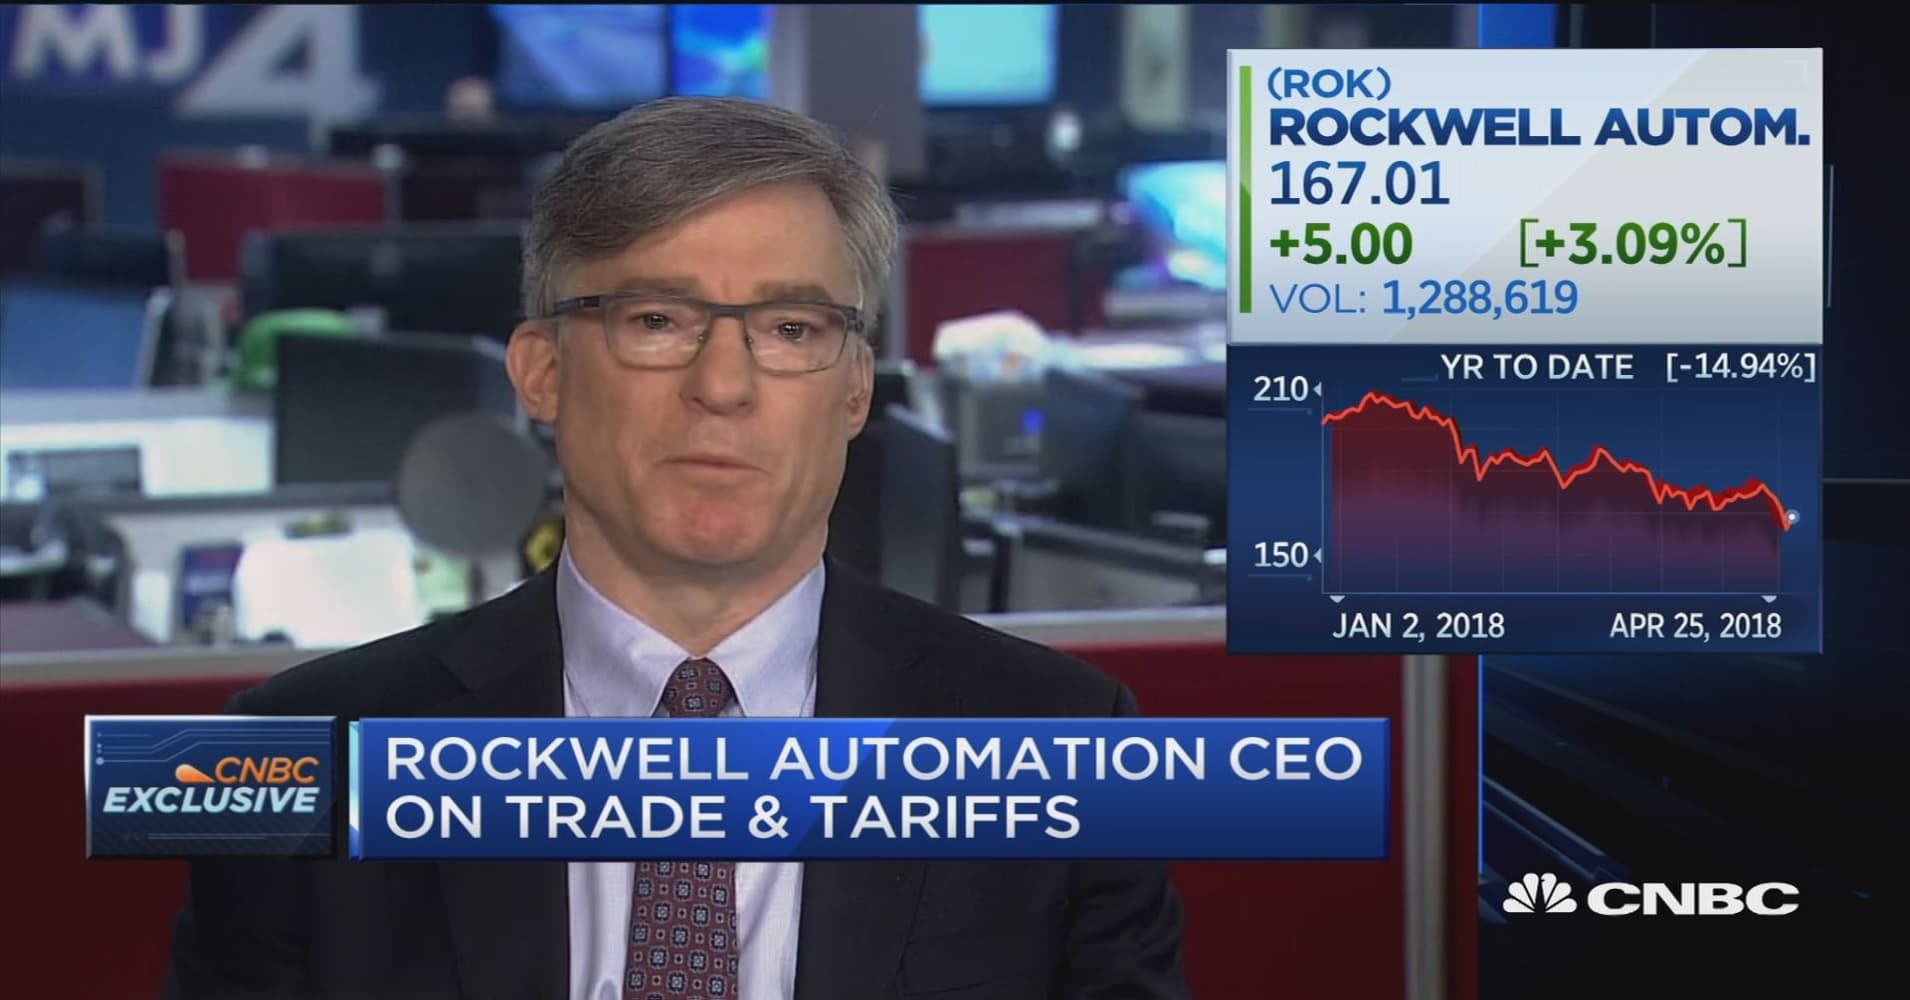 Rockwell automation ceo productivity principles remain constant malvernweather Gallery